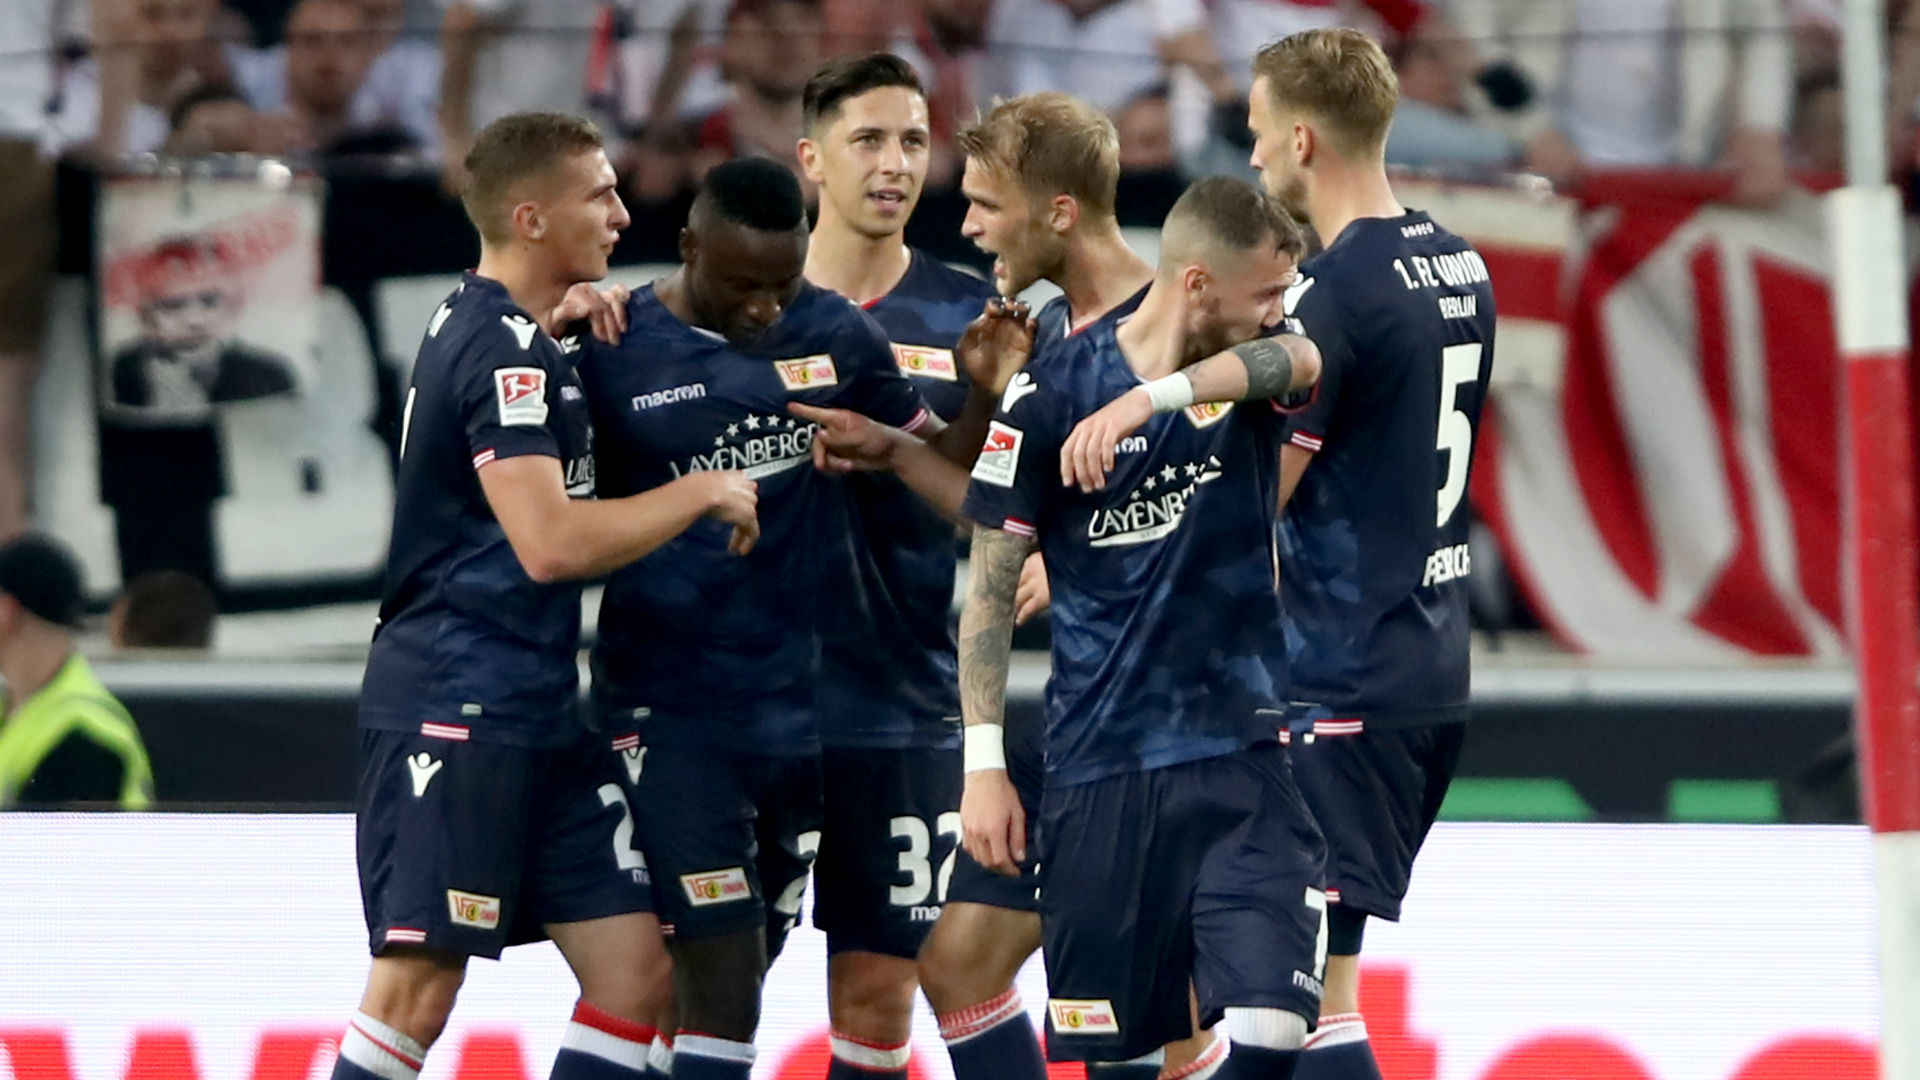 Union Berlin hold Stuttgart in relegation play-off first leg